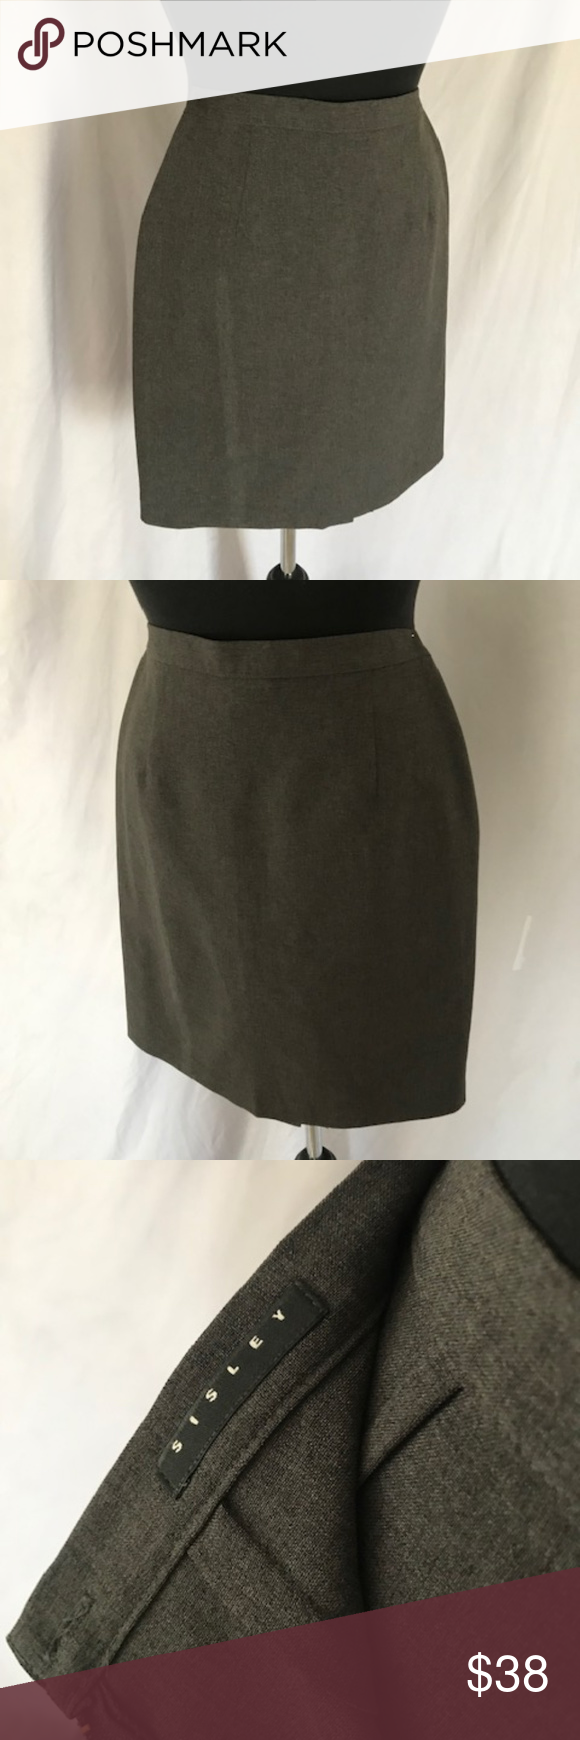 e8194531a4 Sisley Pencil Skirt 100% polyester gray pencil skirt. IT size 40. 26